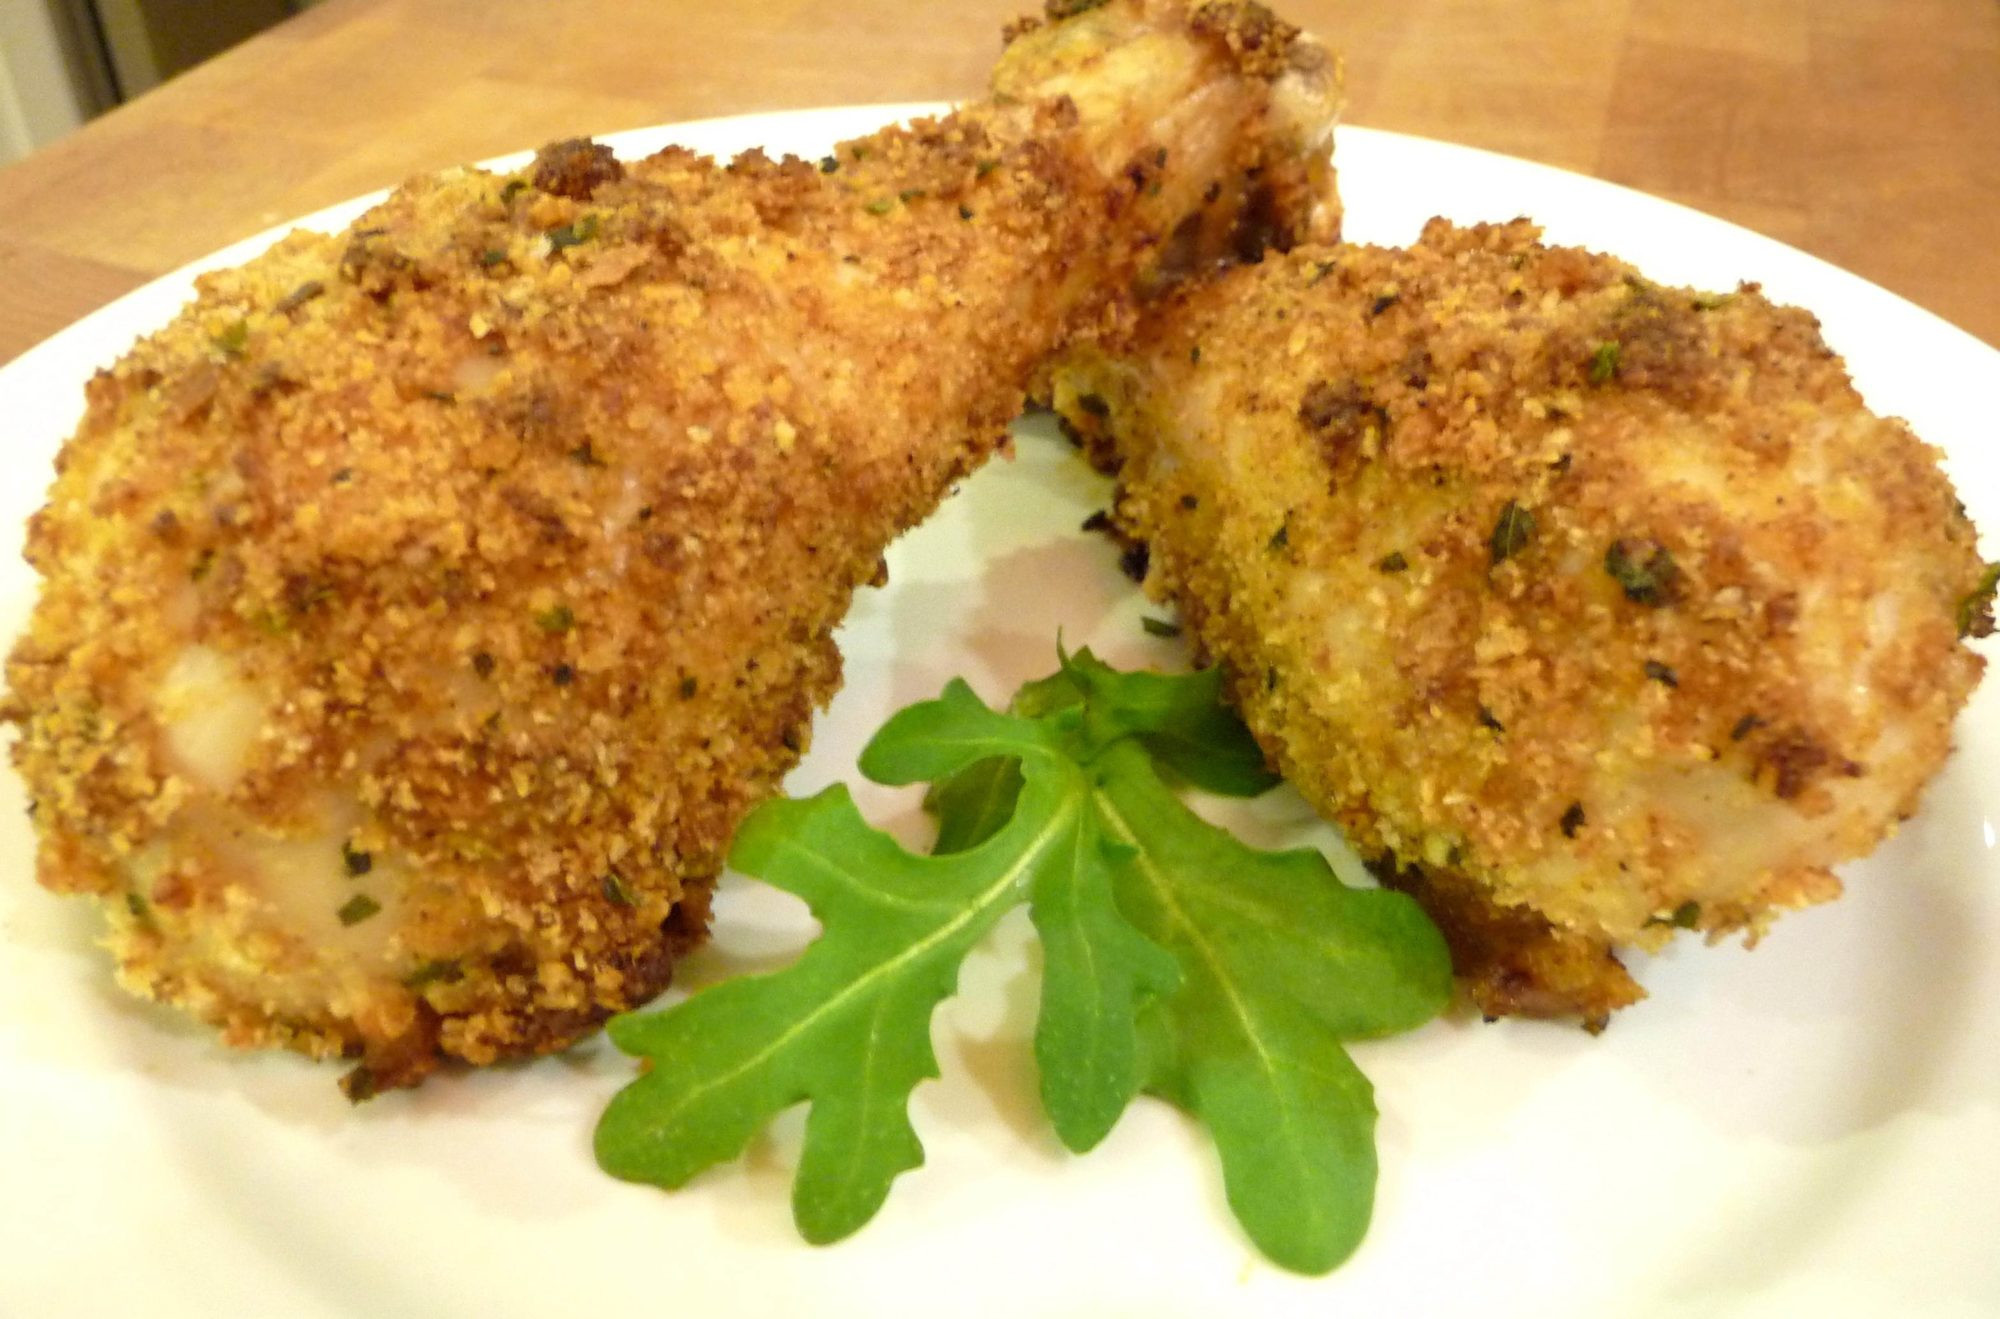 Oven Fried Chicken Drumsticks  Oven Baked Fried Chicken GF Option The Nourishing Home